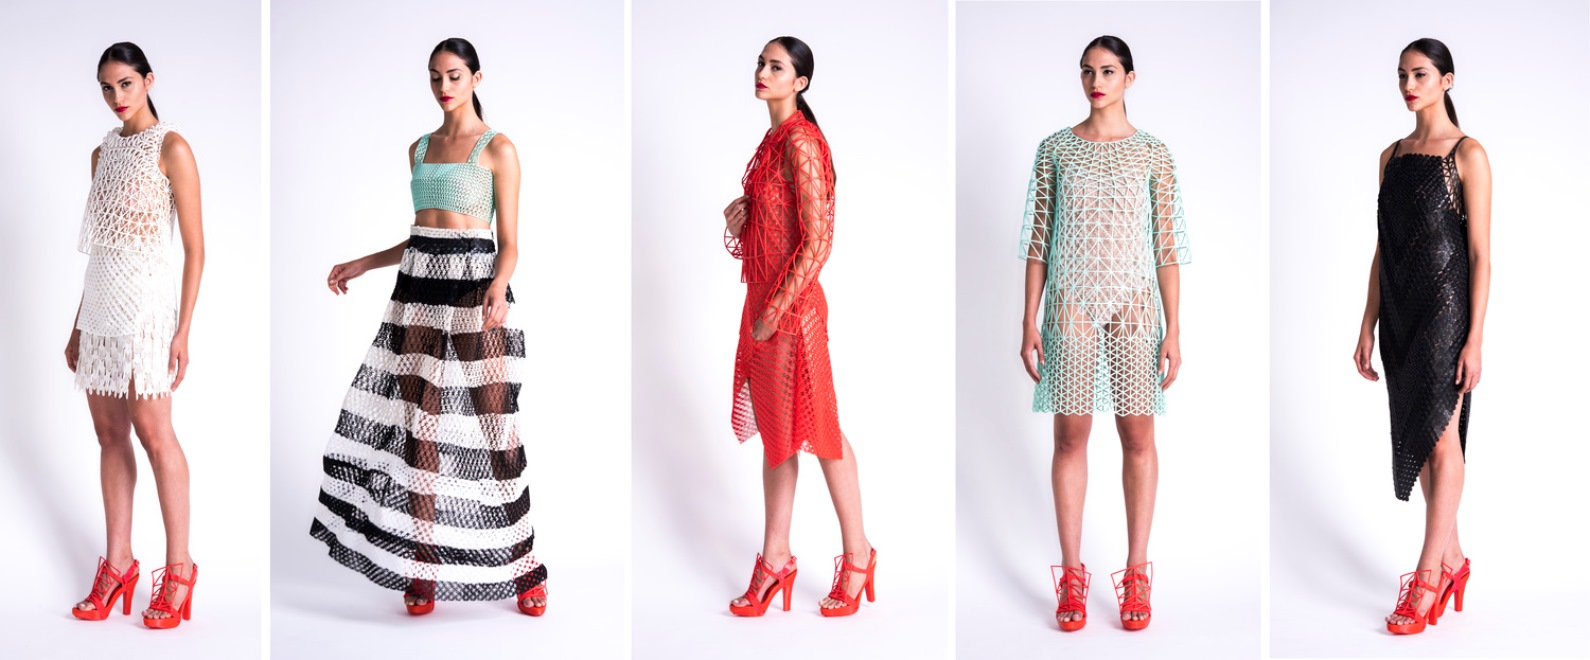 World S First Fashion Collection Printed At Home Israel21c